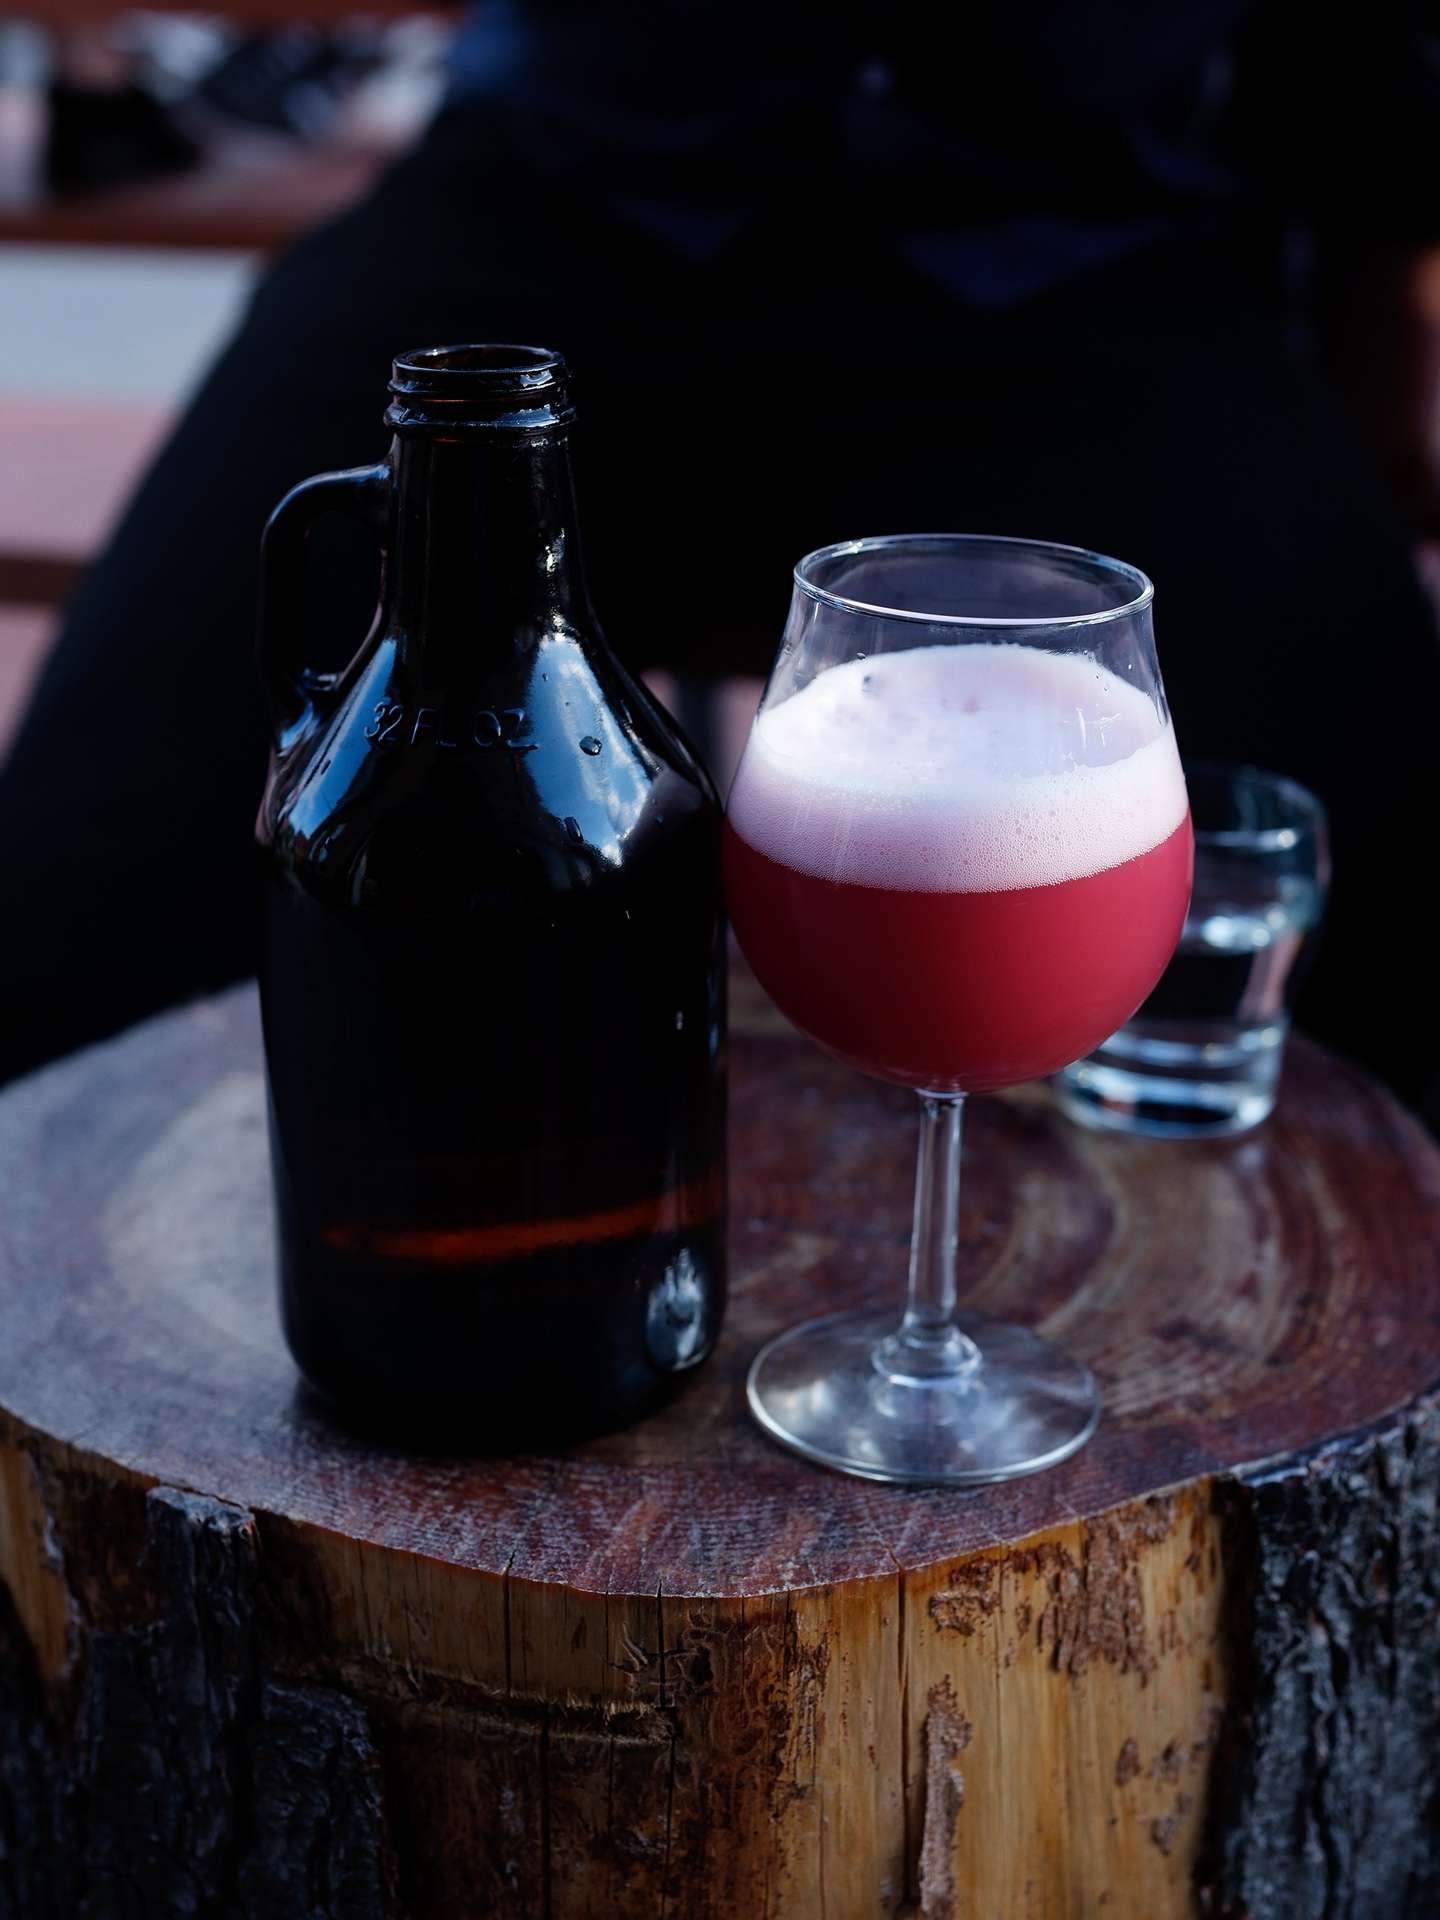 glass of cherry tinted beer with old fashioned bottle next to it on wood piece photographed by Guillaume Simoneau as part of Off Duty Montreal series for The Wall Street Journal magazine